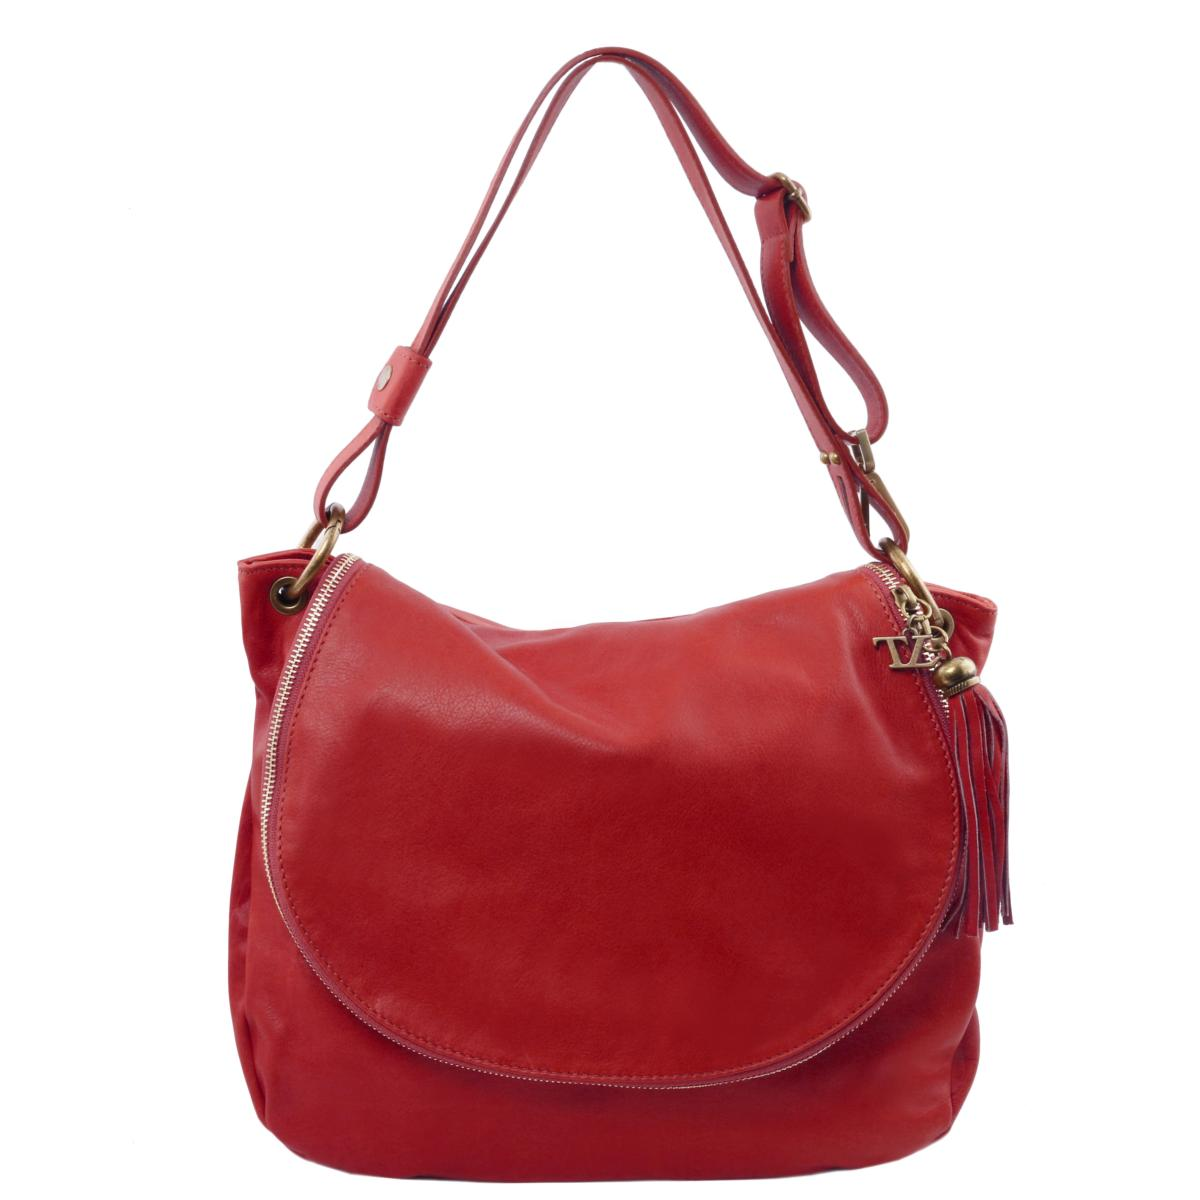 c02ff1deb07a0 Sac Cuir Bandoulière Besace Femme -Tuscany Leather -